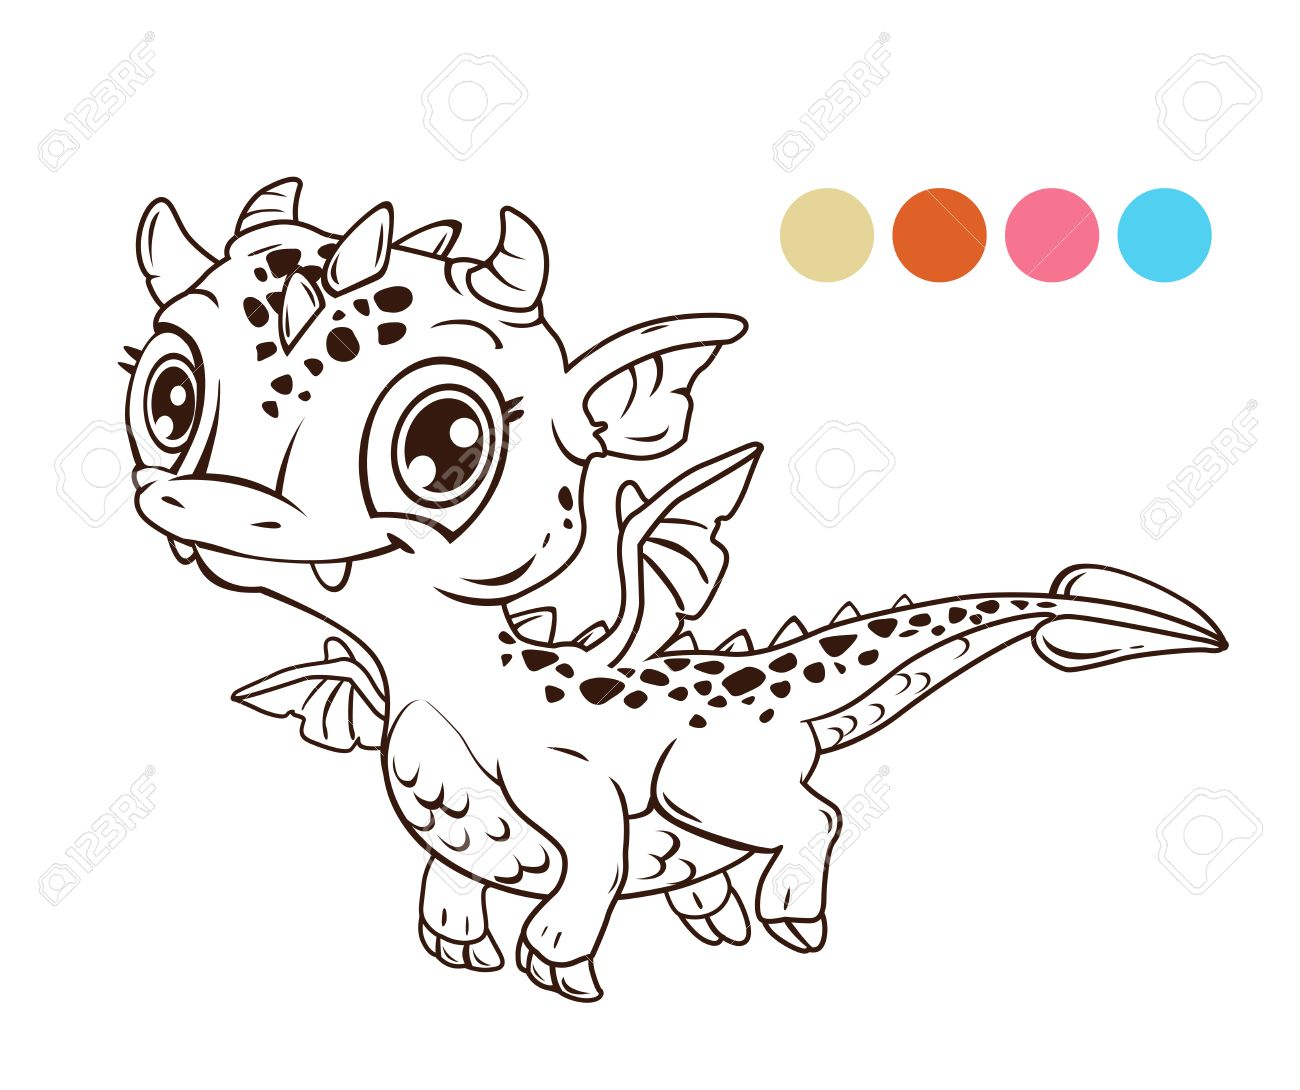 Cute Cartoon Fliegenden Baby Drachen Kontur Illustration Fur